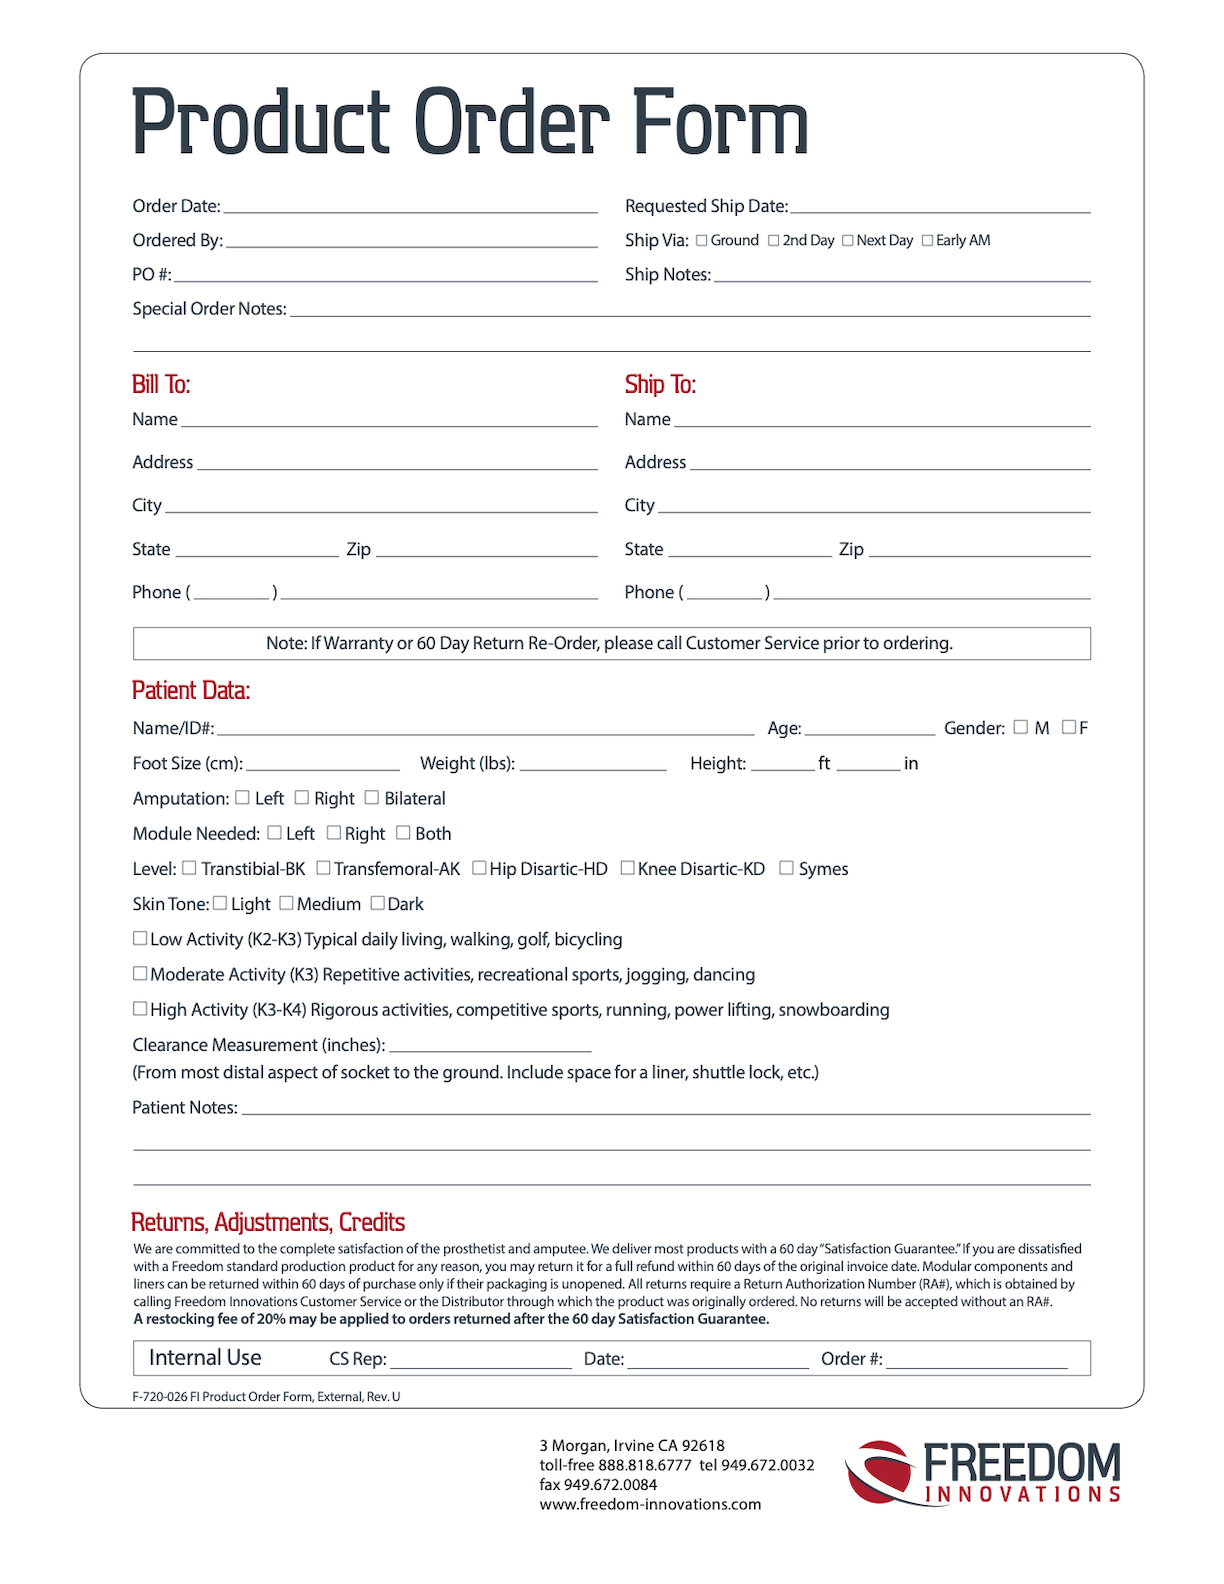 Freedom Innovations Product Order Form